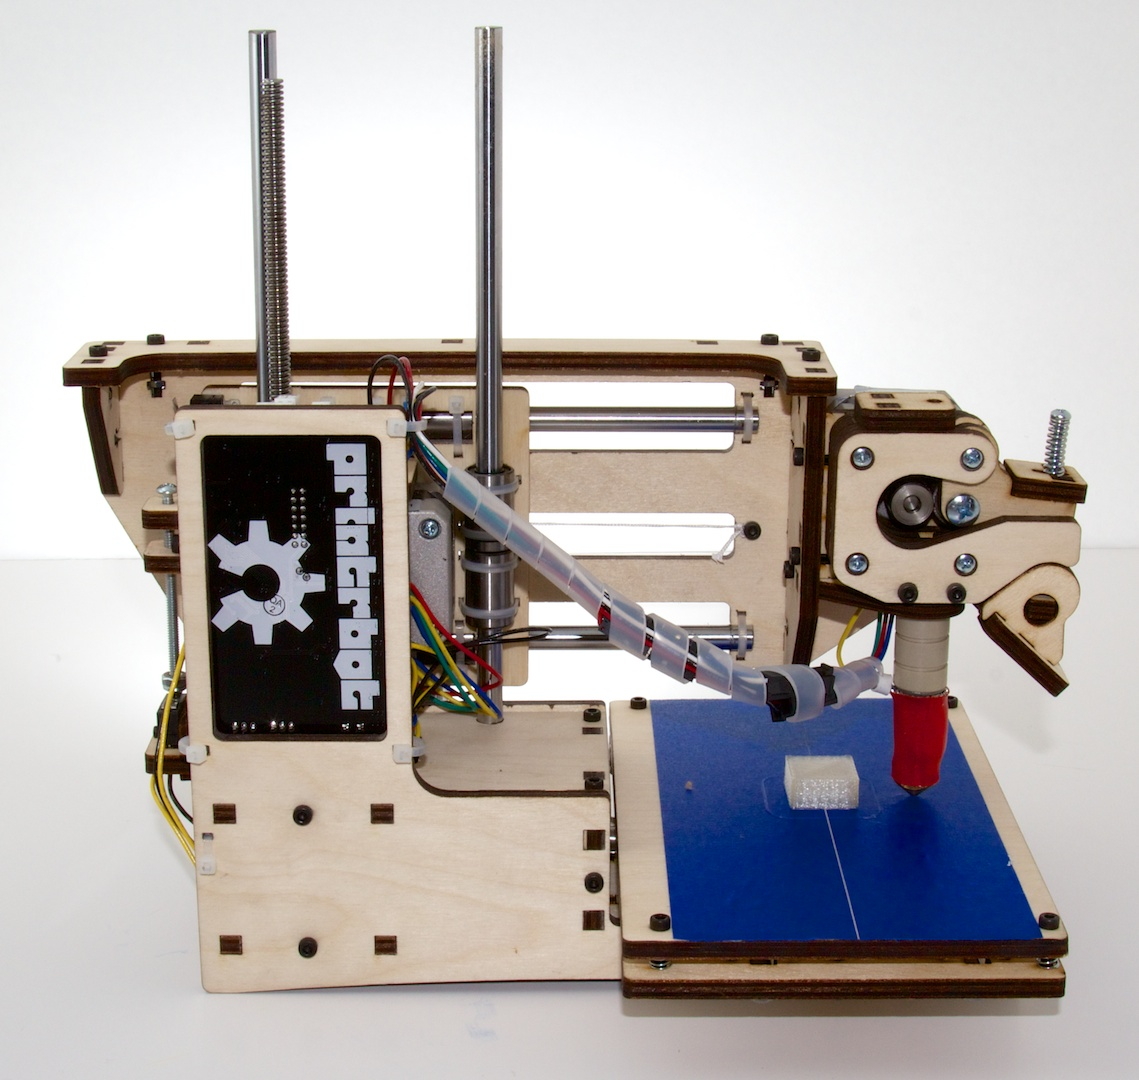 The Printrbot Simple, with the factory-printed test object still attached to the bed.